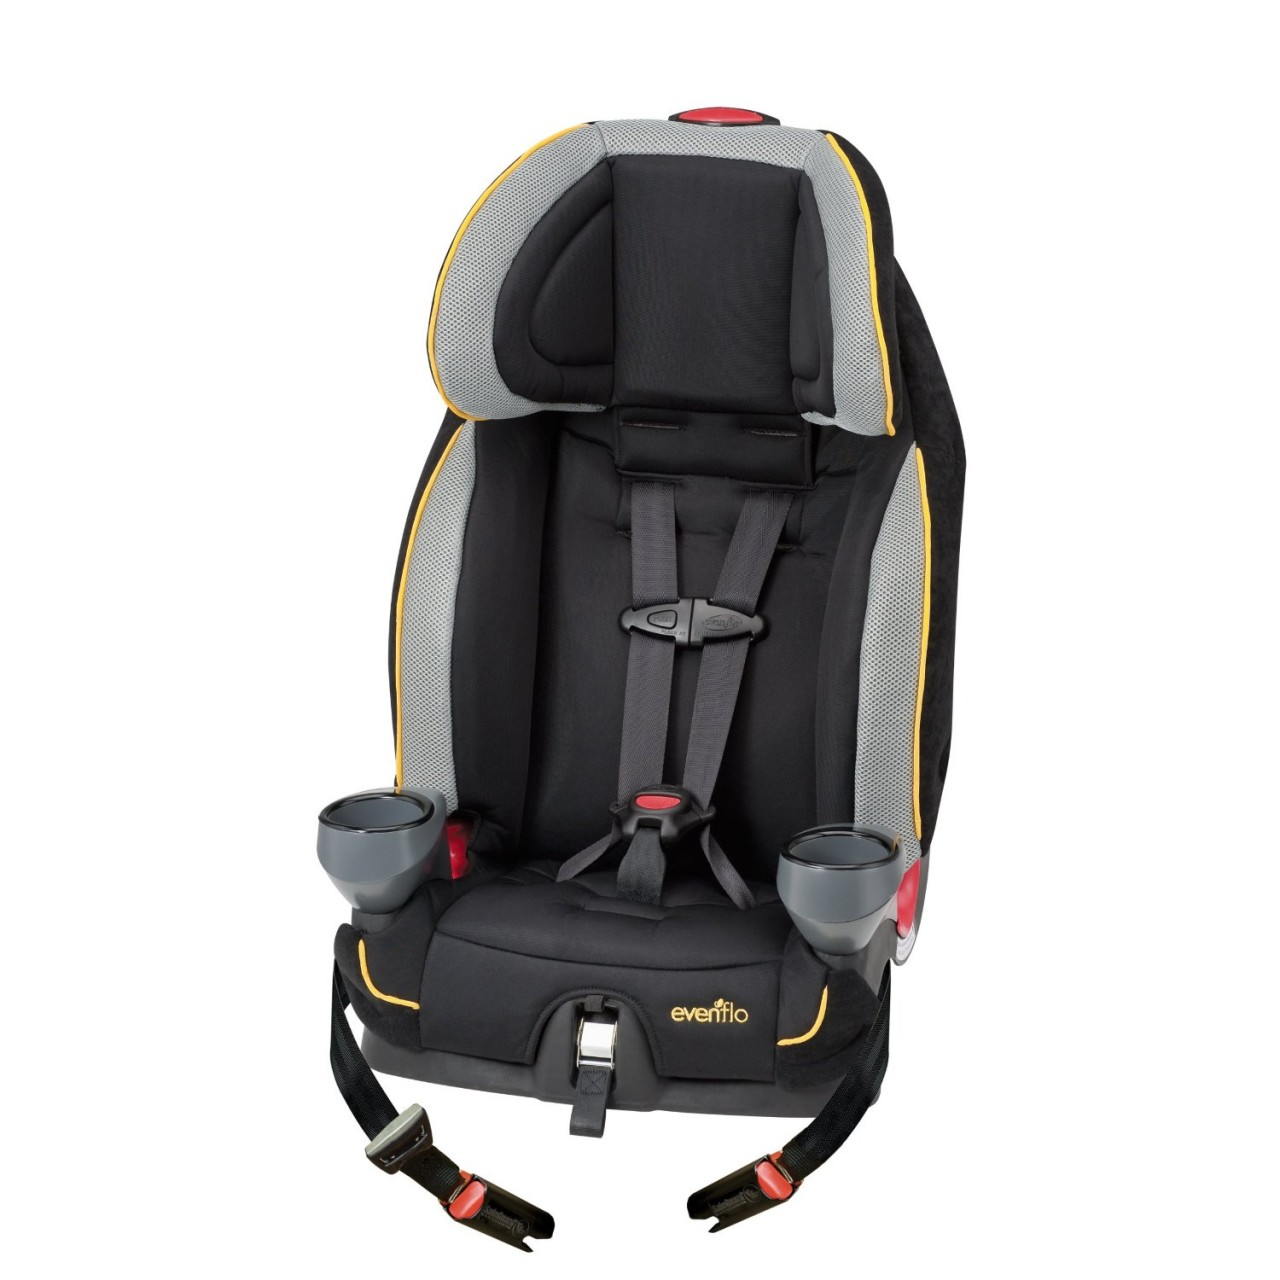 puter Chairs Canberra together with Graco Argos 80 Elite 3 In 1 Car Seat In Azalea Review as well 20659731 also Dora The Explorer Snack Time For Baby Boots Playset in addition Convertible Booster Rear And Forward Facing Car Seats Which Is Best For My Baby. on evenflo high chair review